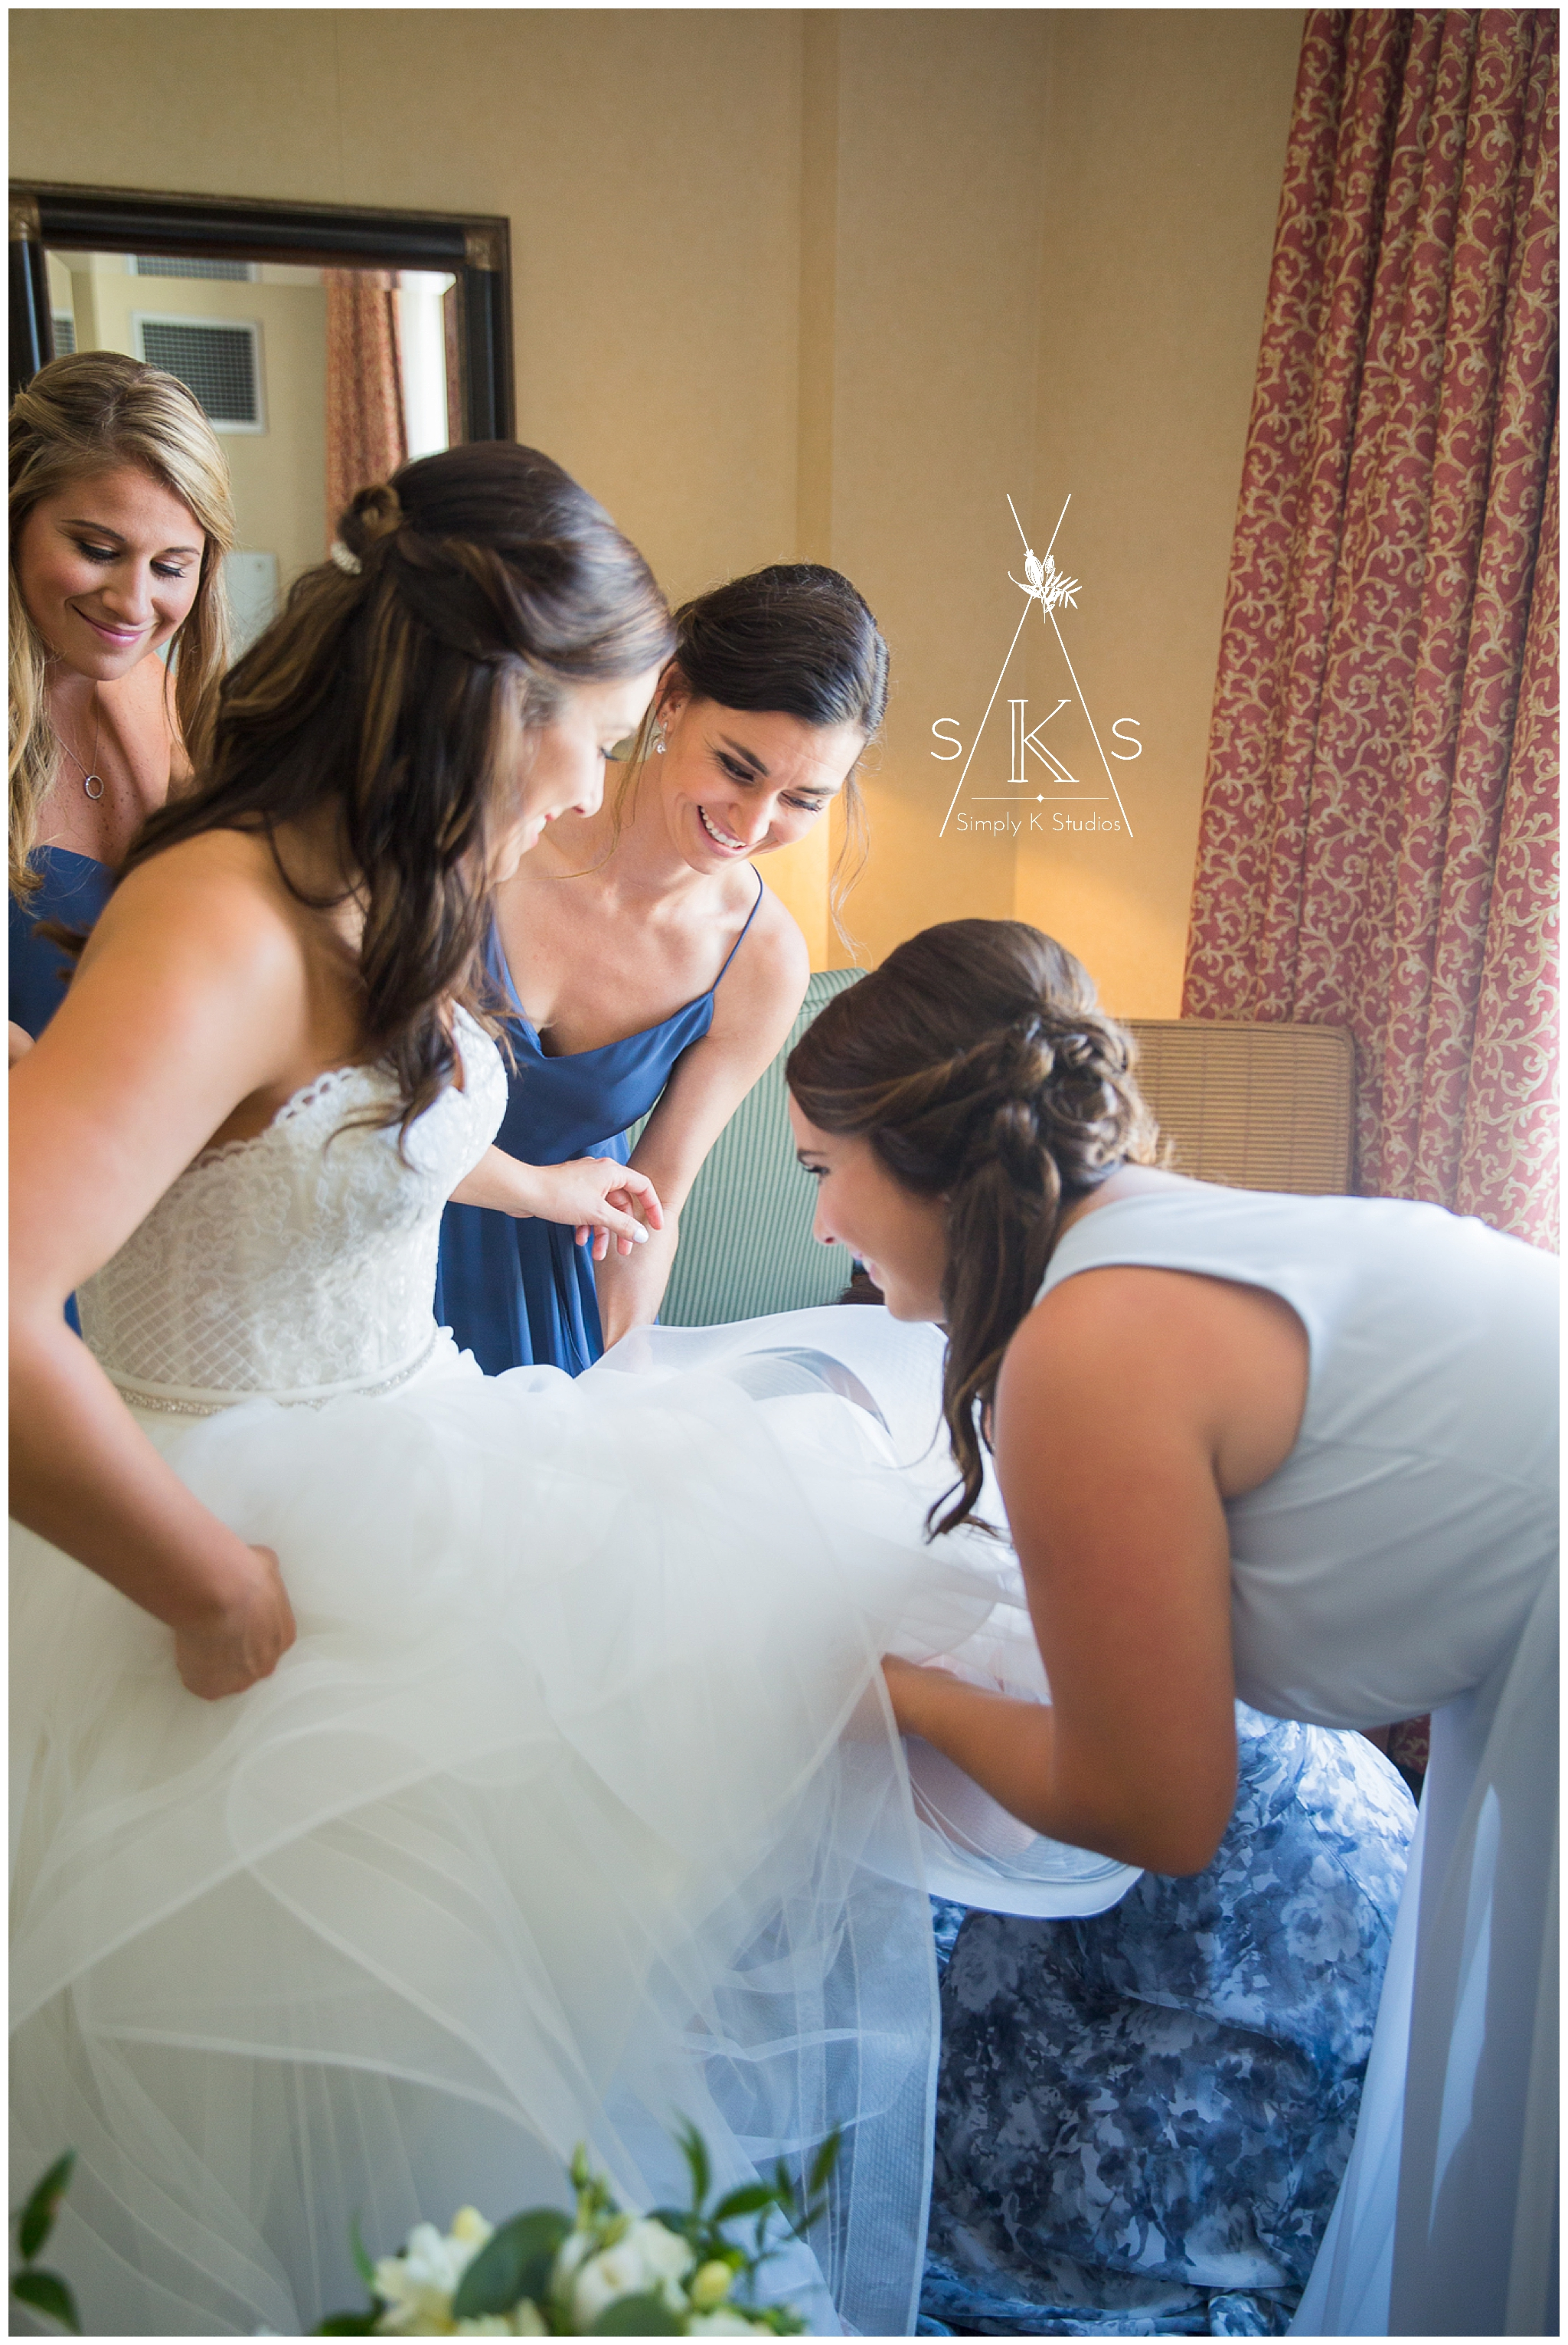 Photos of getting ready before a wedding